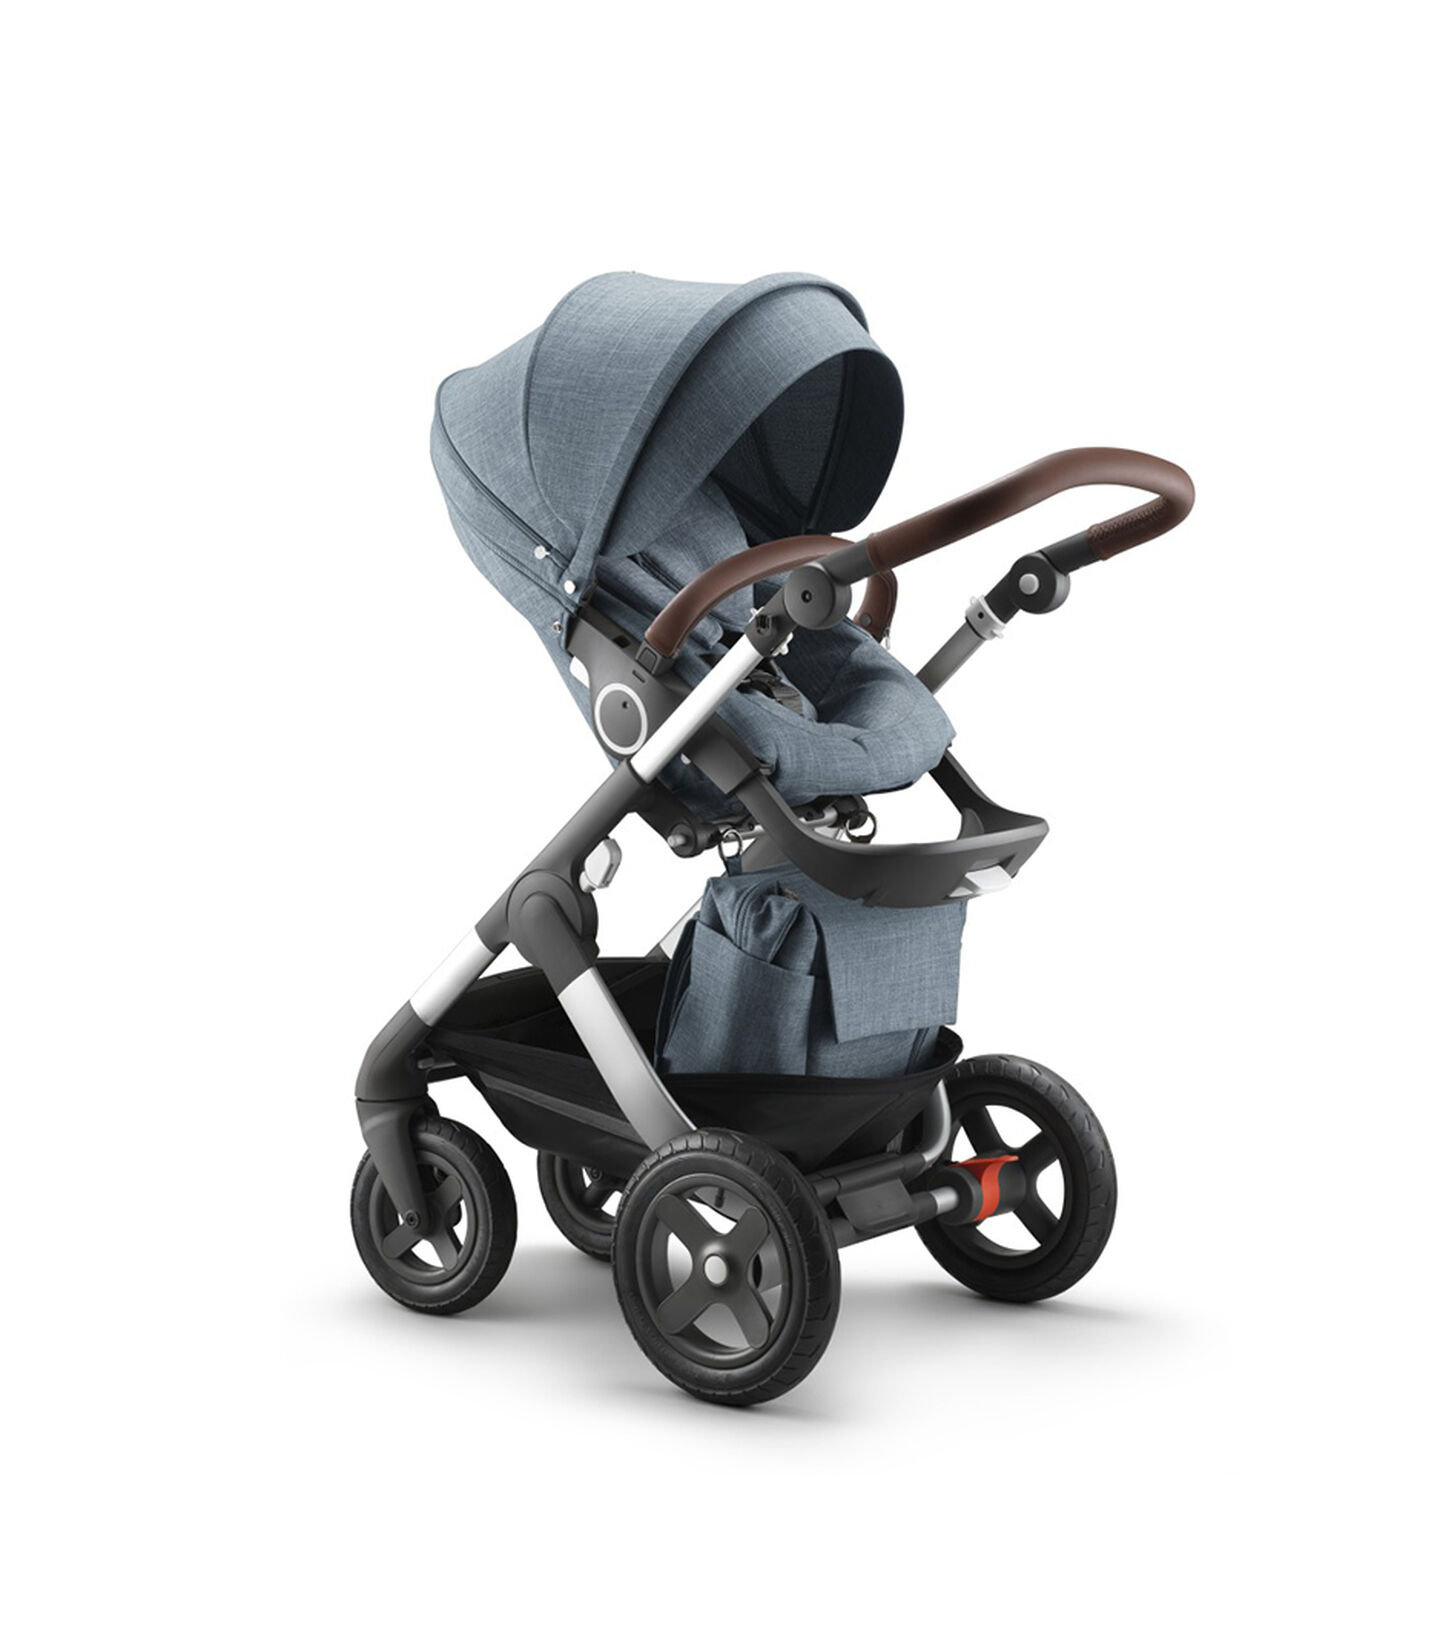 Stokke® Trailz™ Terrain  with Stokke® Stroller Seat and Shopping Bag, Nordic Blue.